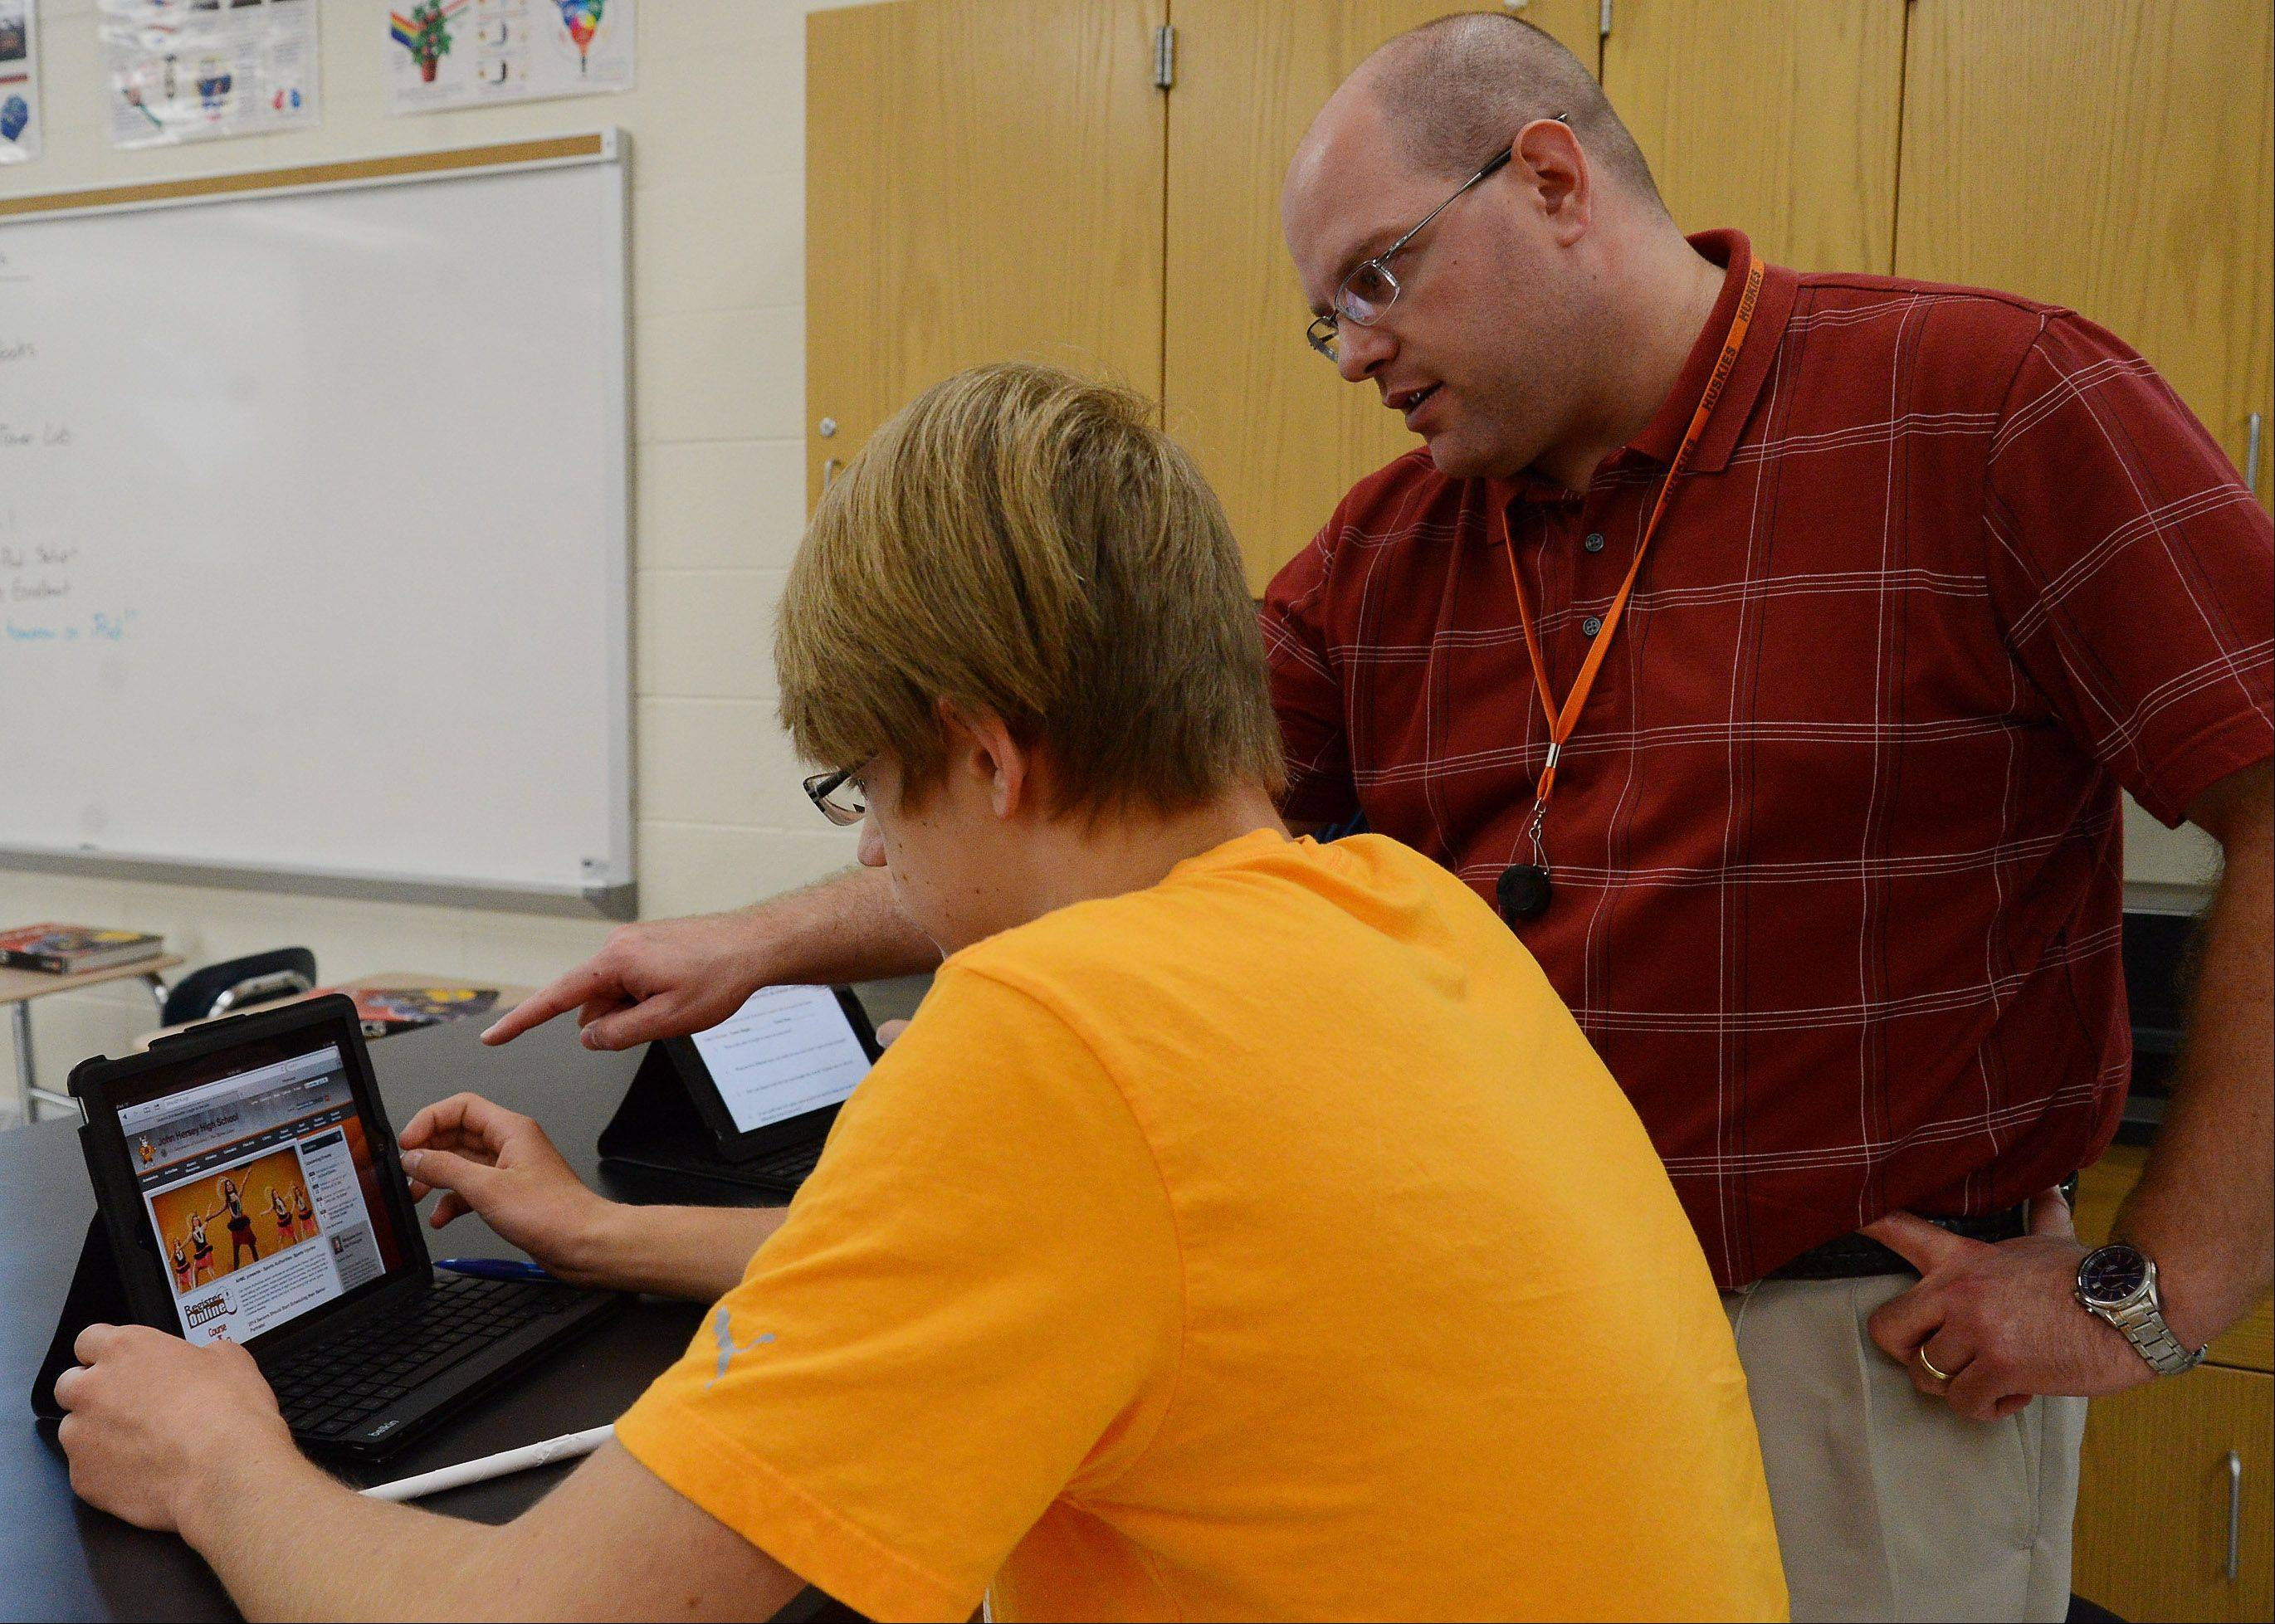 Hersey High School physics teacher Andy Finlayson instructs Danny Obyrtacz on how to use an iPad the student received as part of a pilot program.